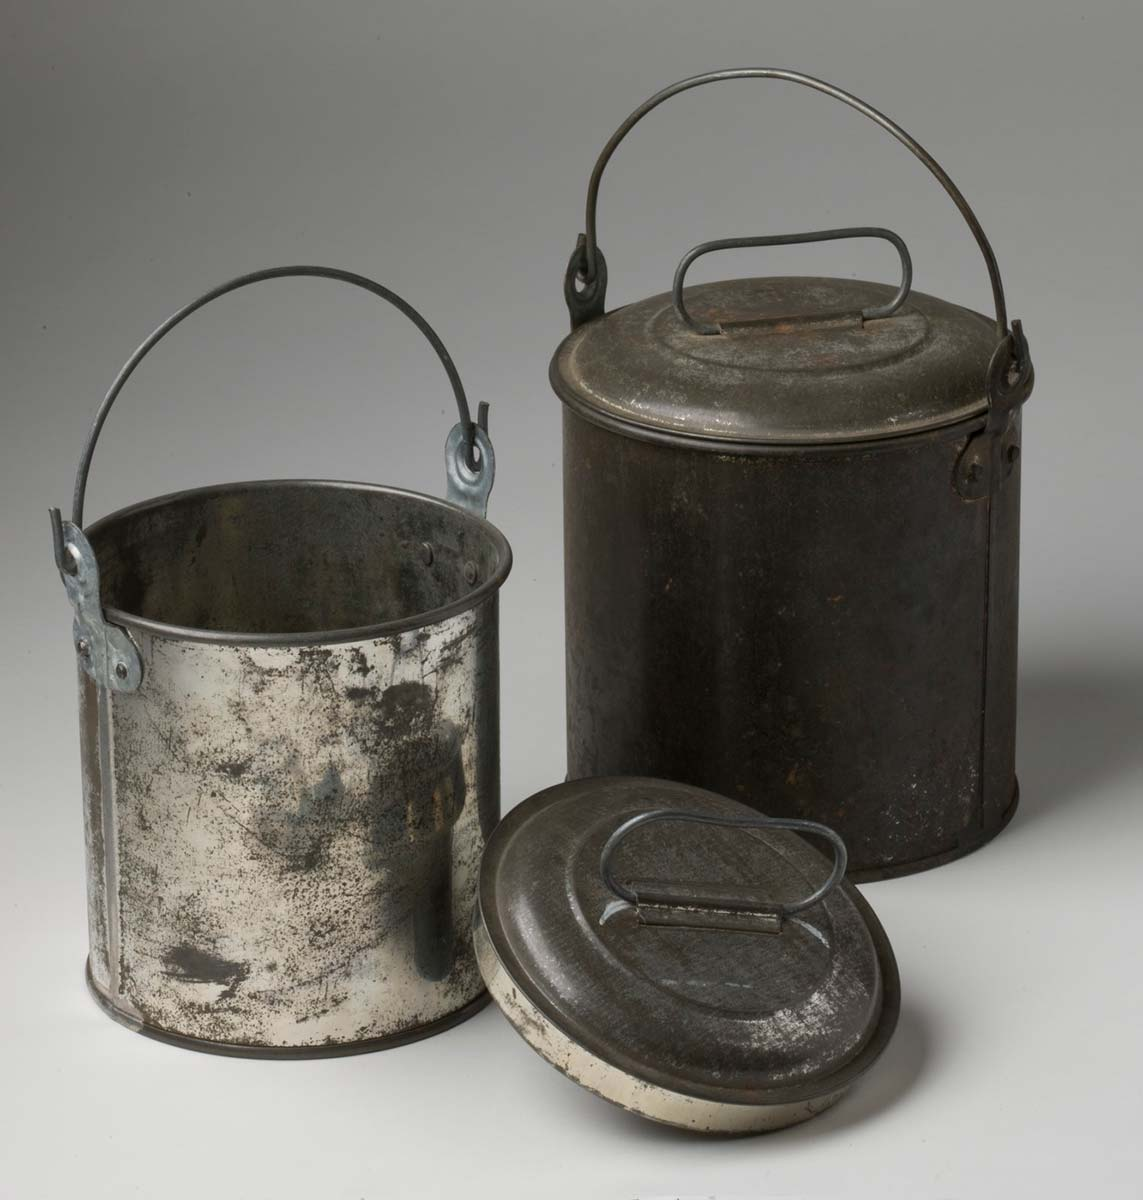 Three billy cans with lids. - click to view larger image